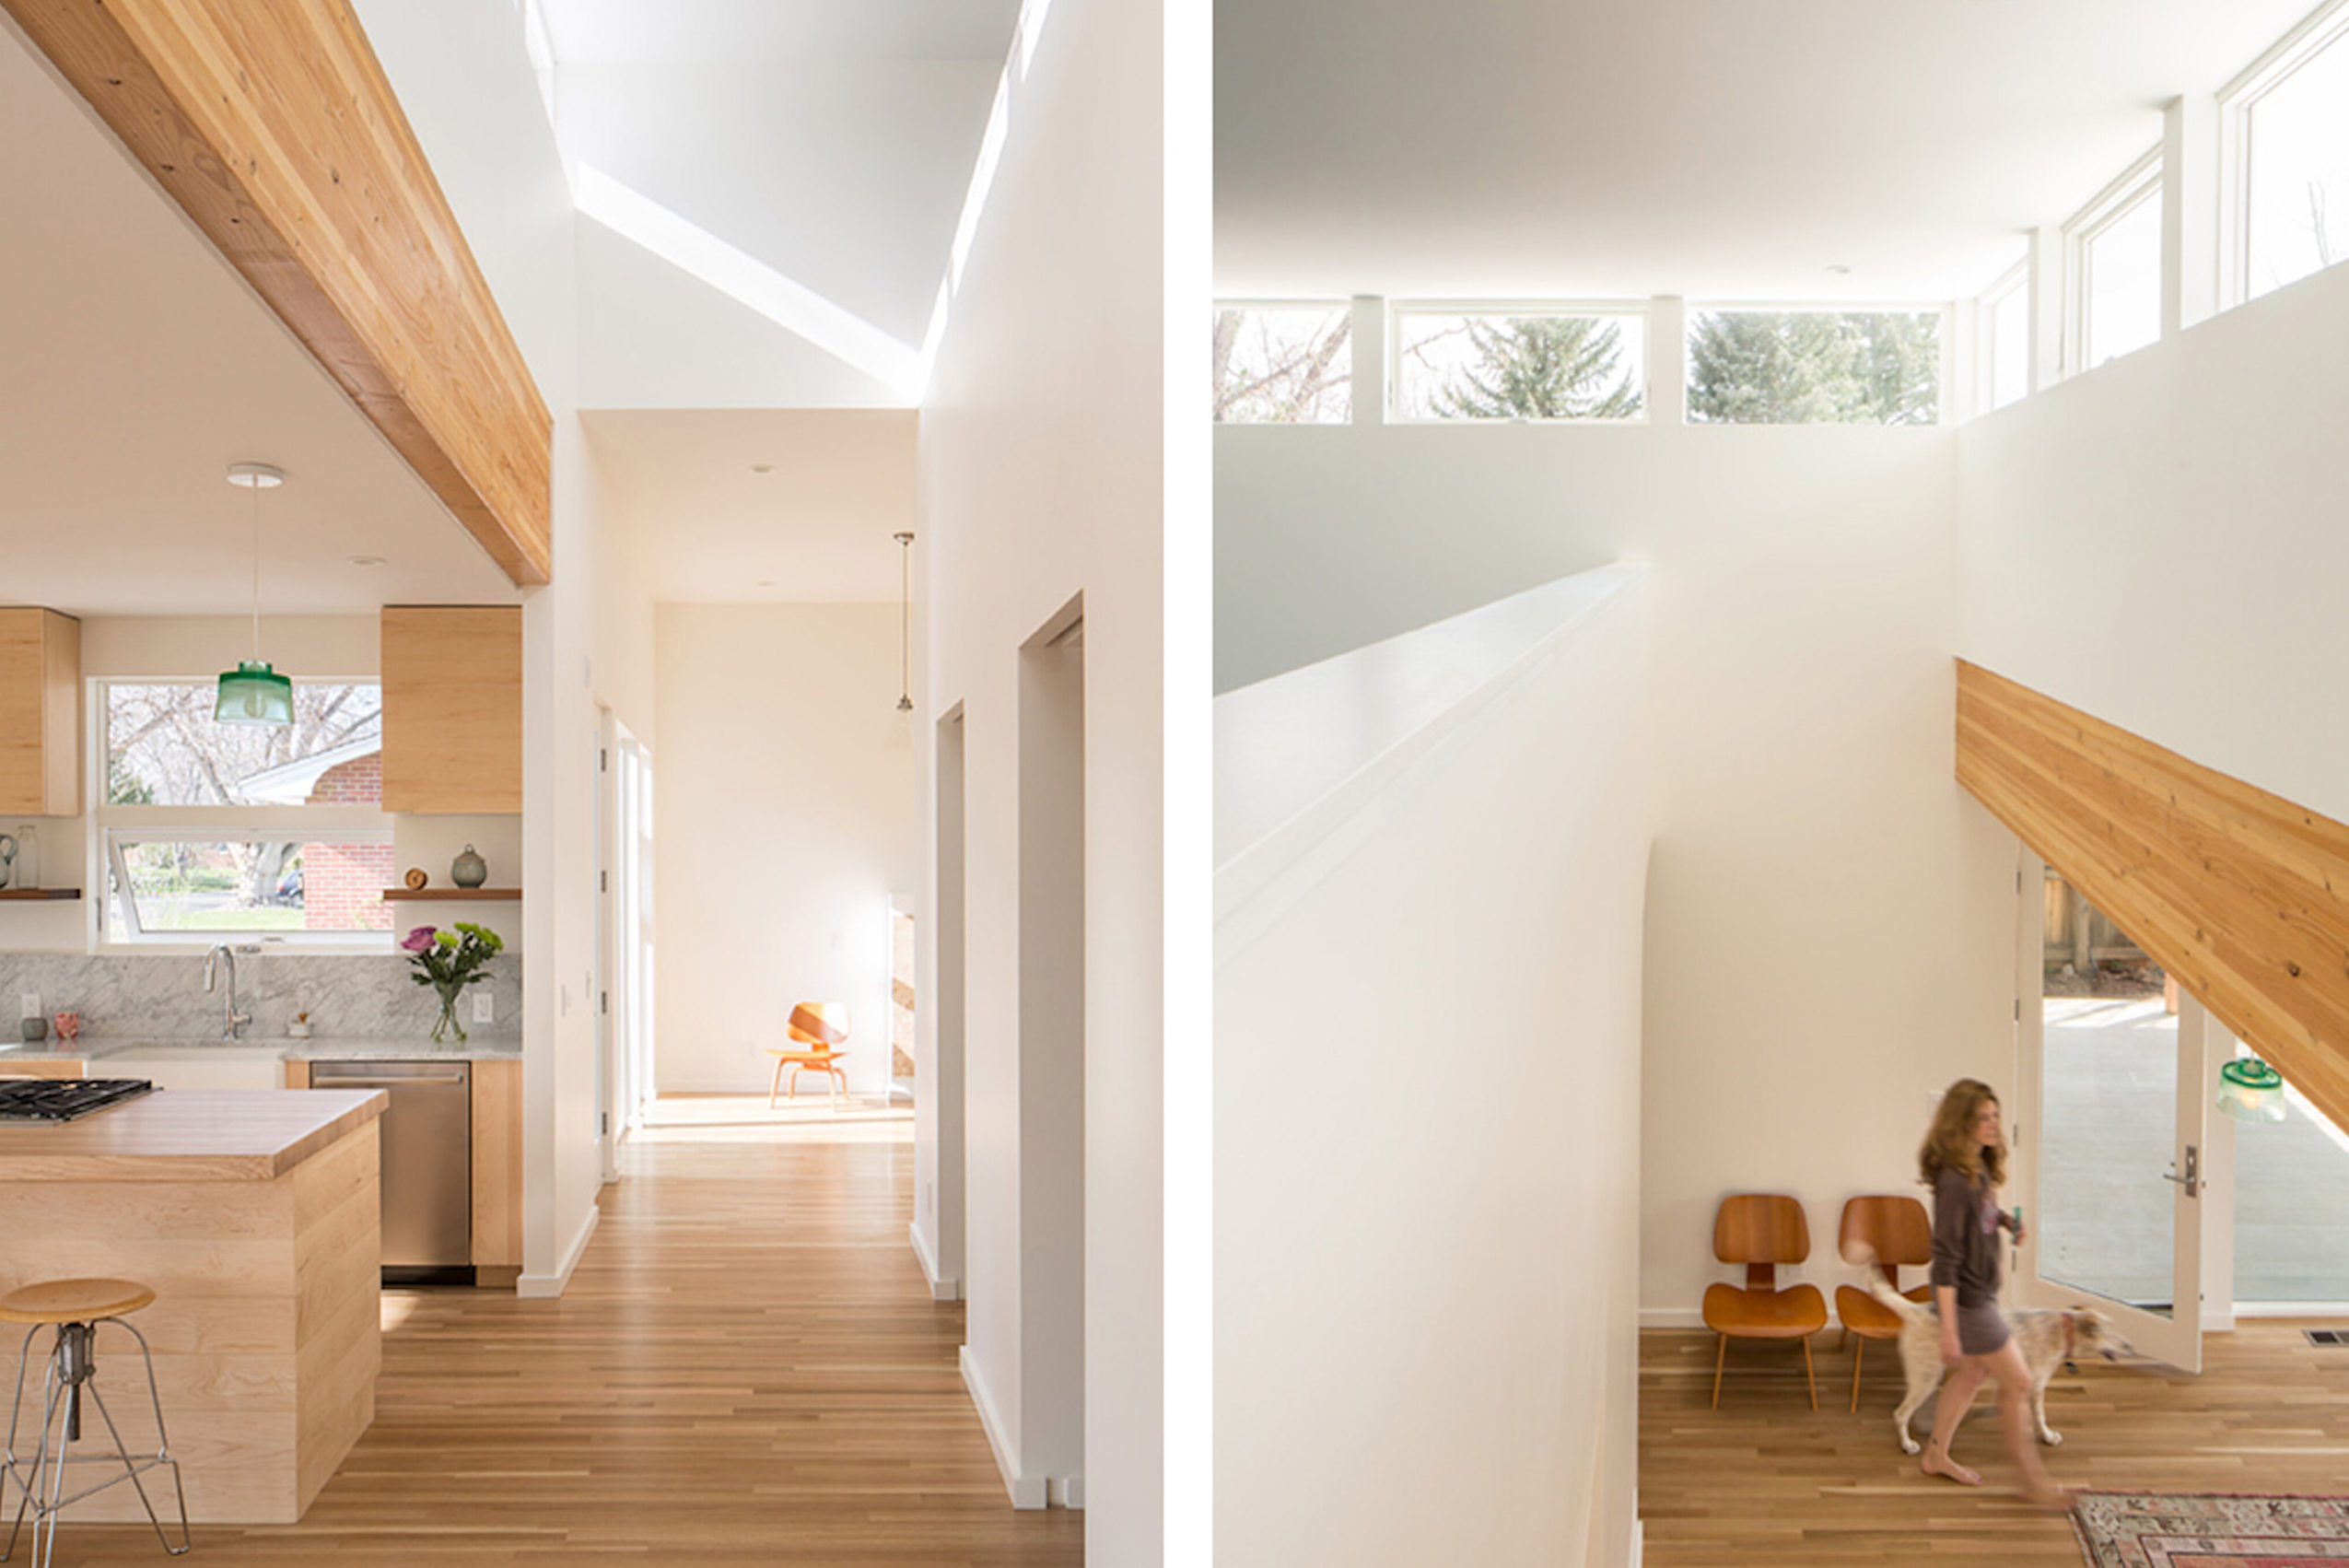 Interior view of Reduce Reuse Remodel by Renée del Gaudio Architecture